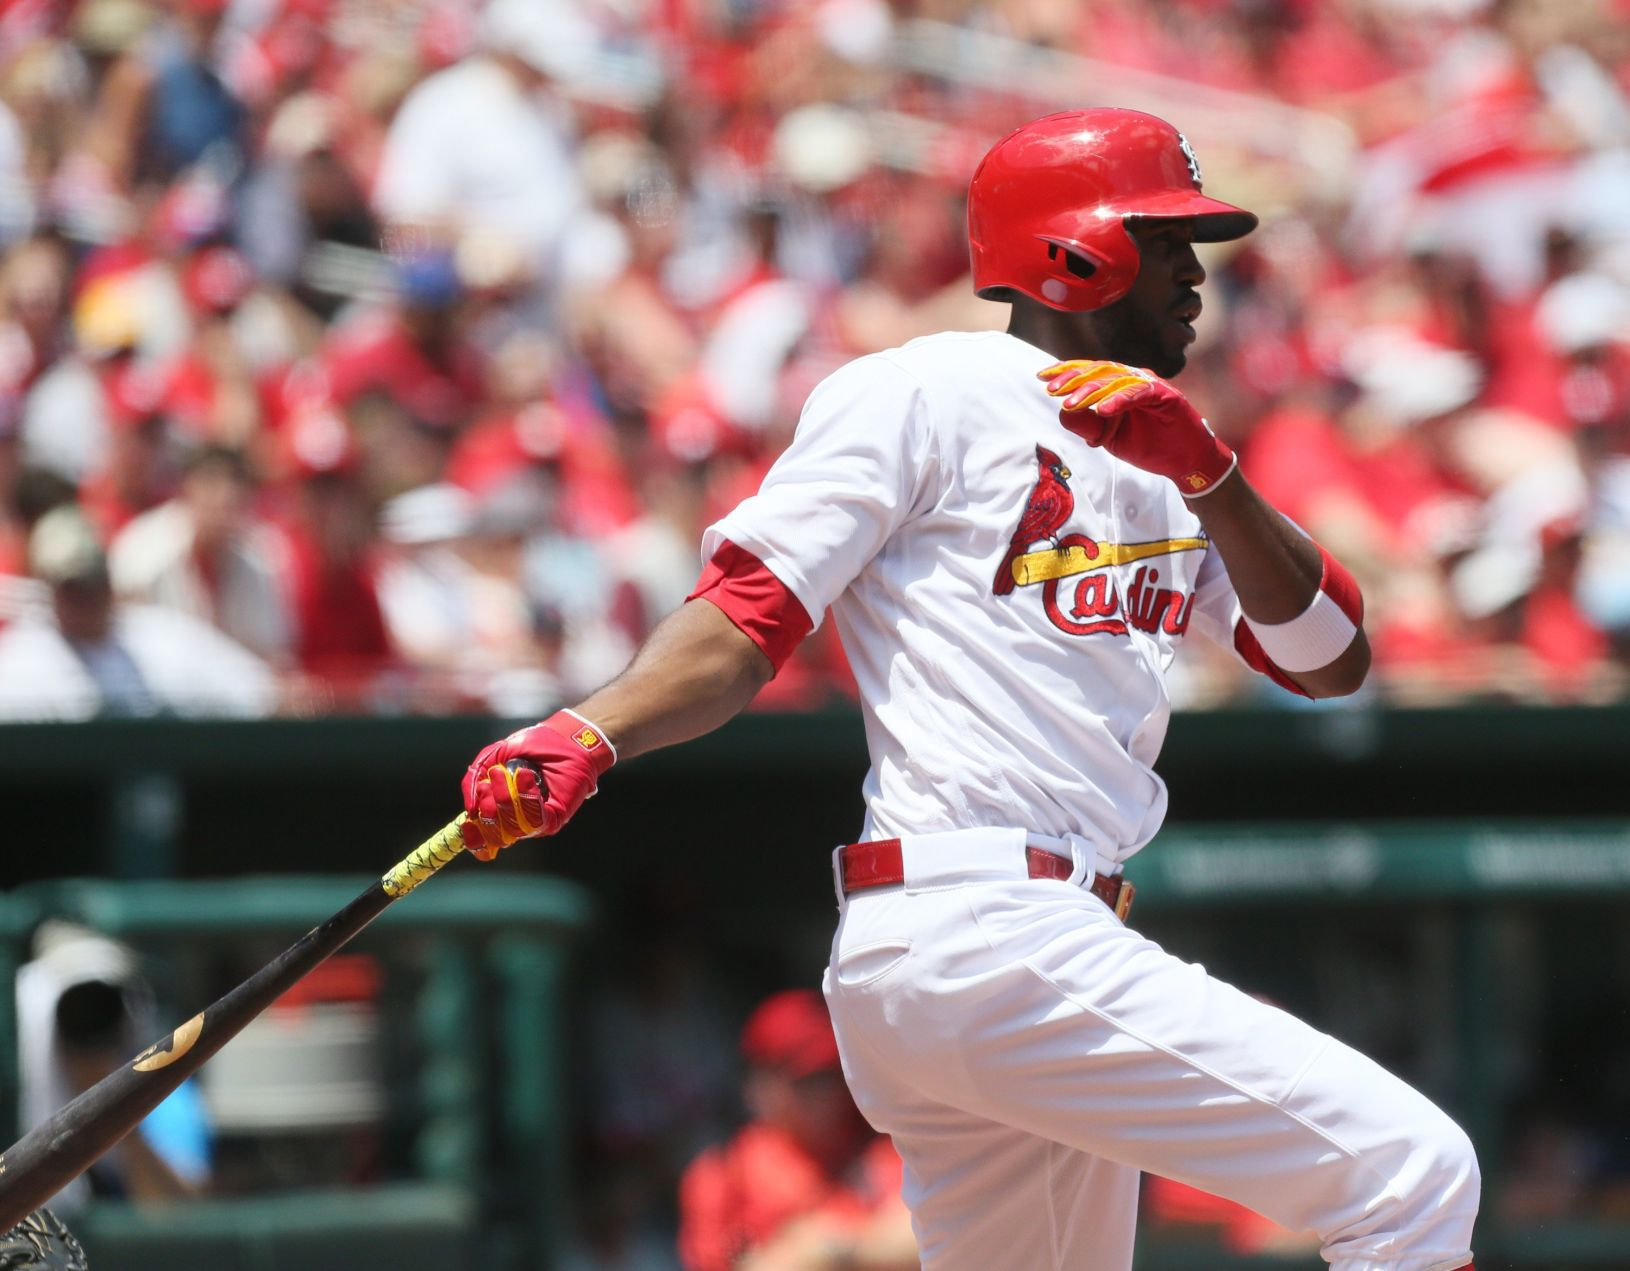 Cardinals activate outfielder Dexter Fowler from disabled list